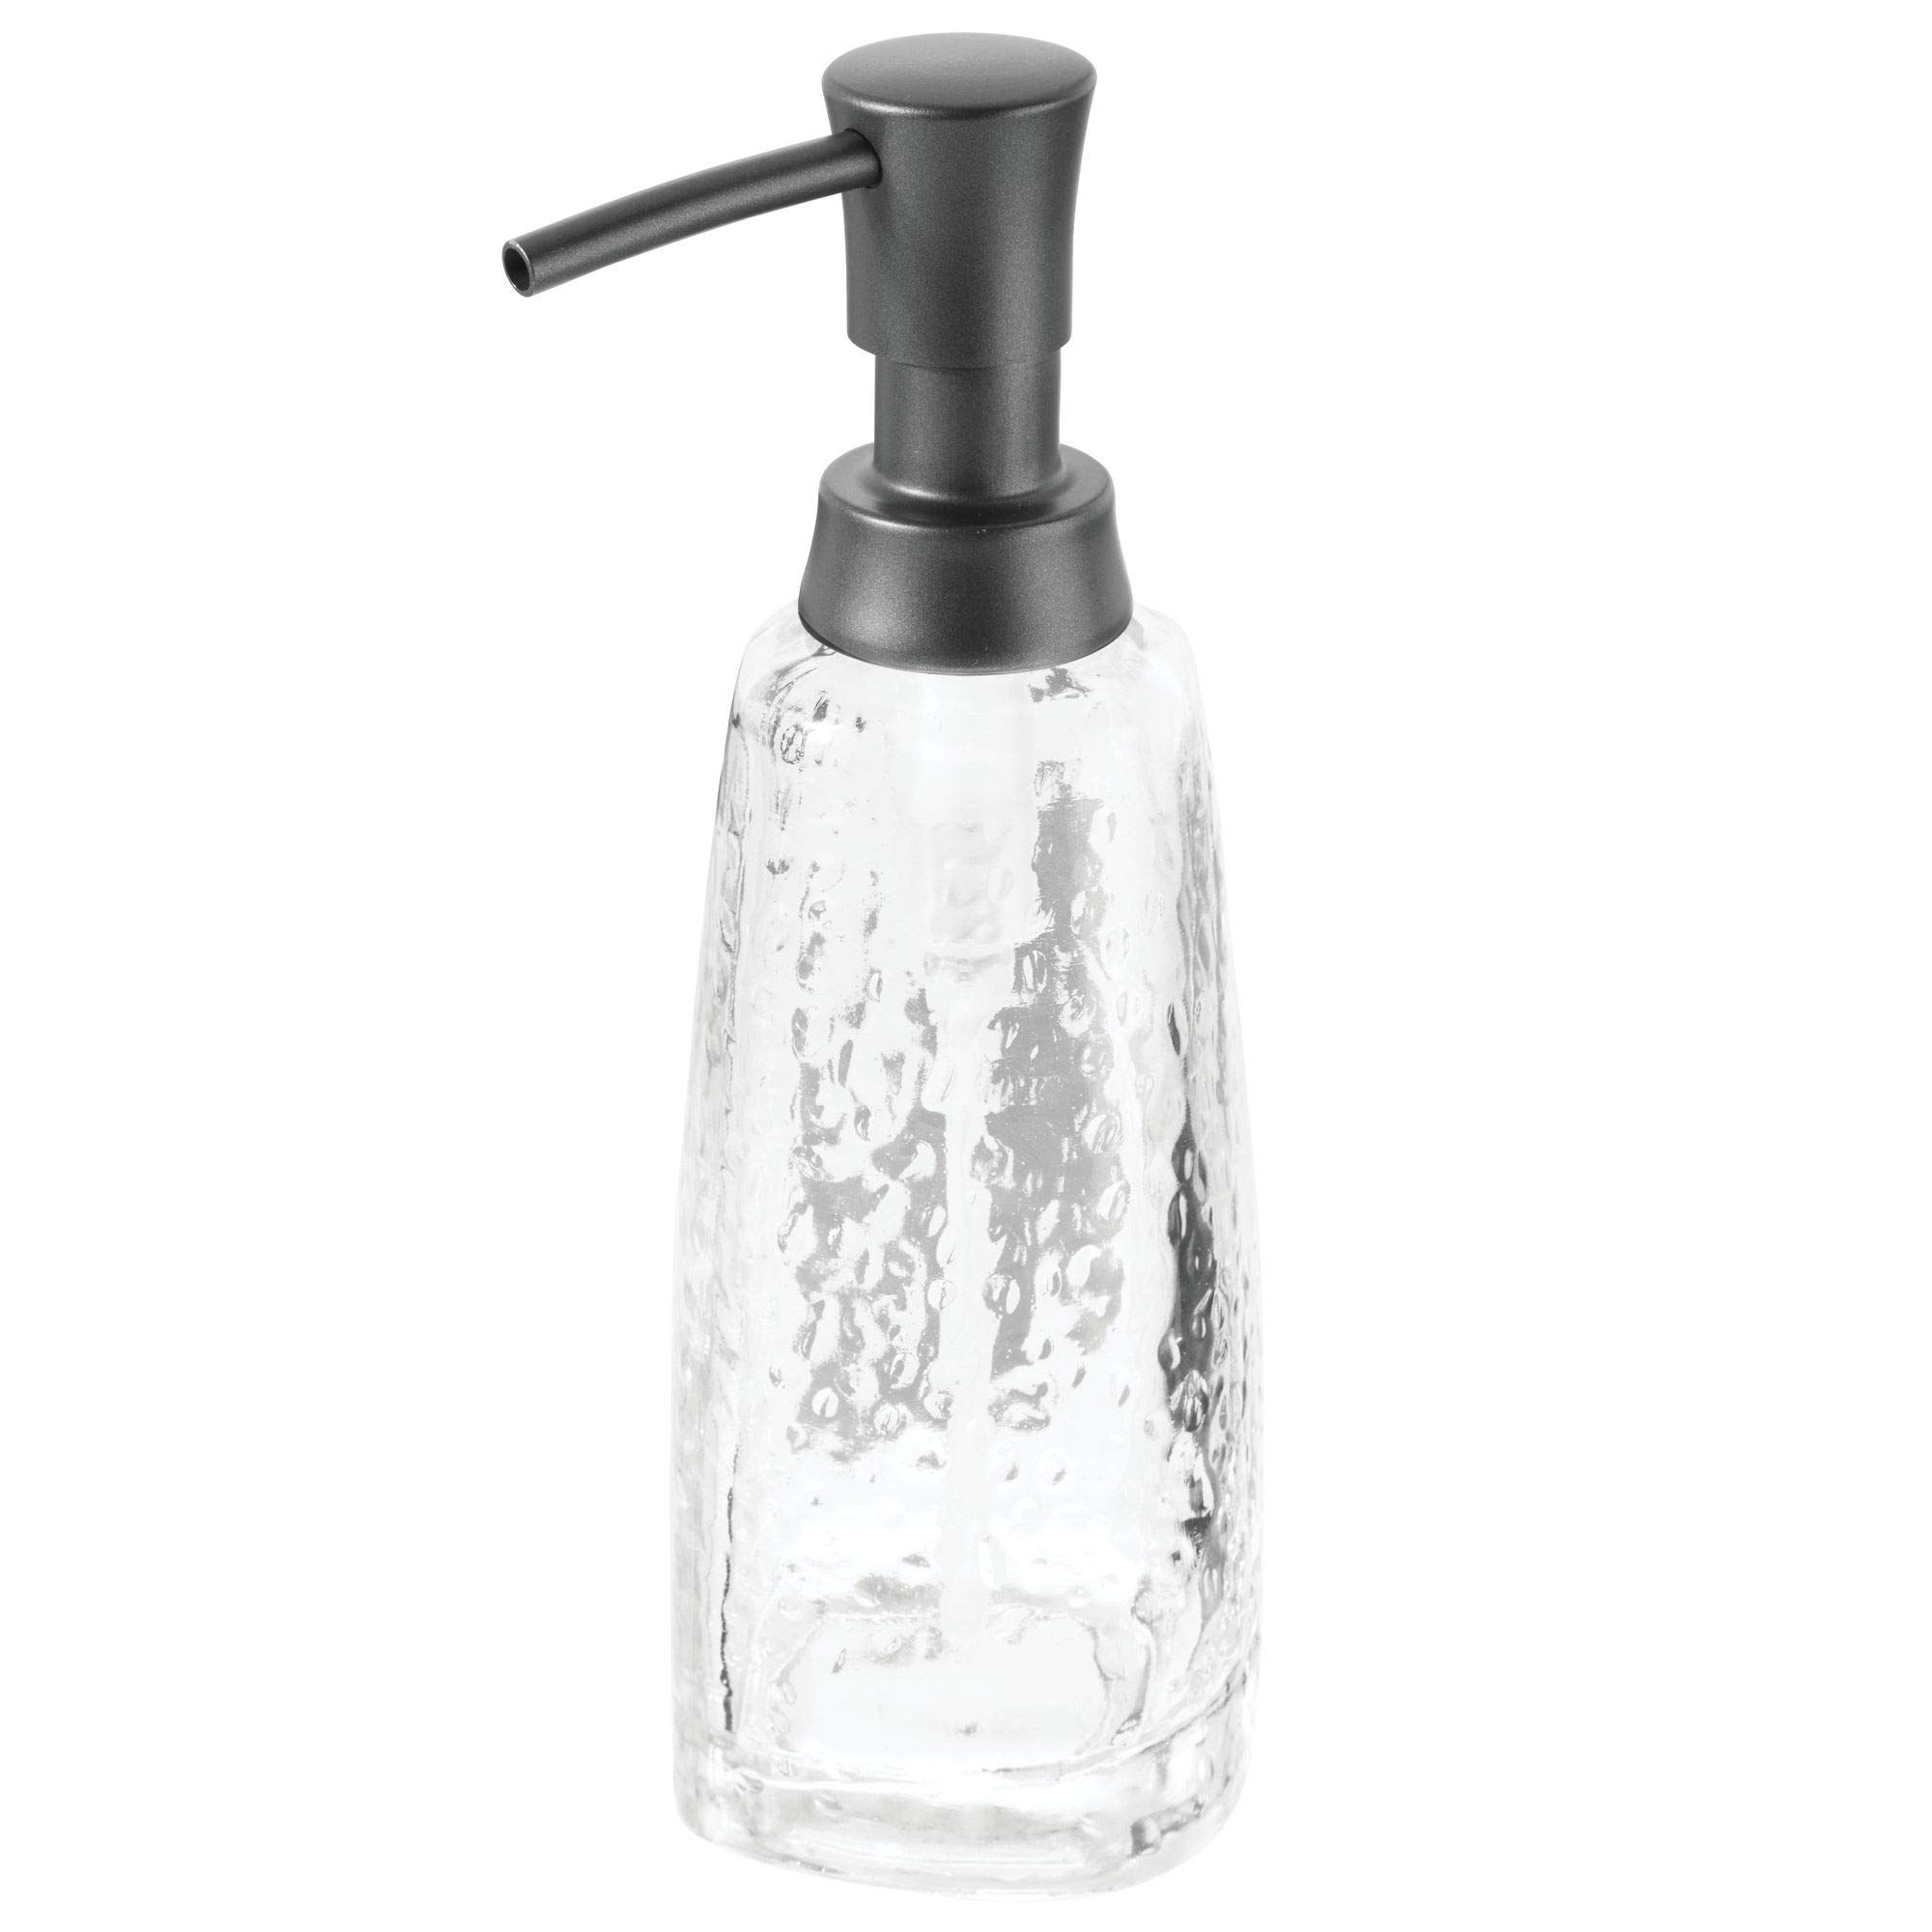 Mdesign Modern Glass Refillable Liquid Soap Dispenser Pump Bottle